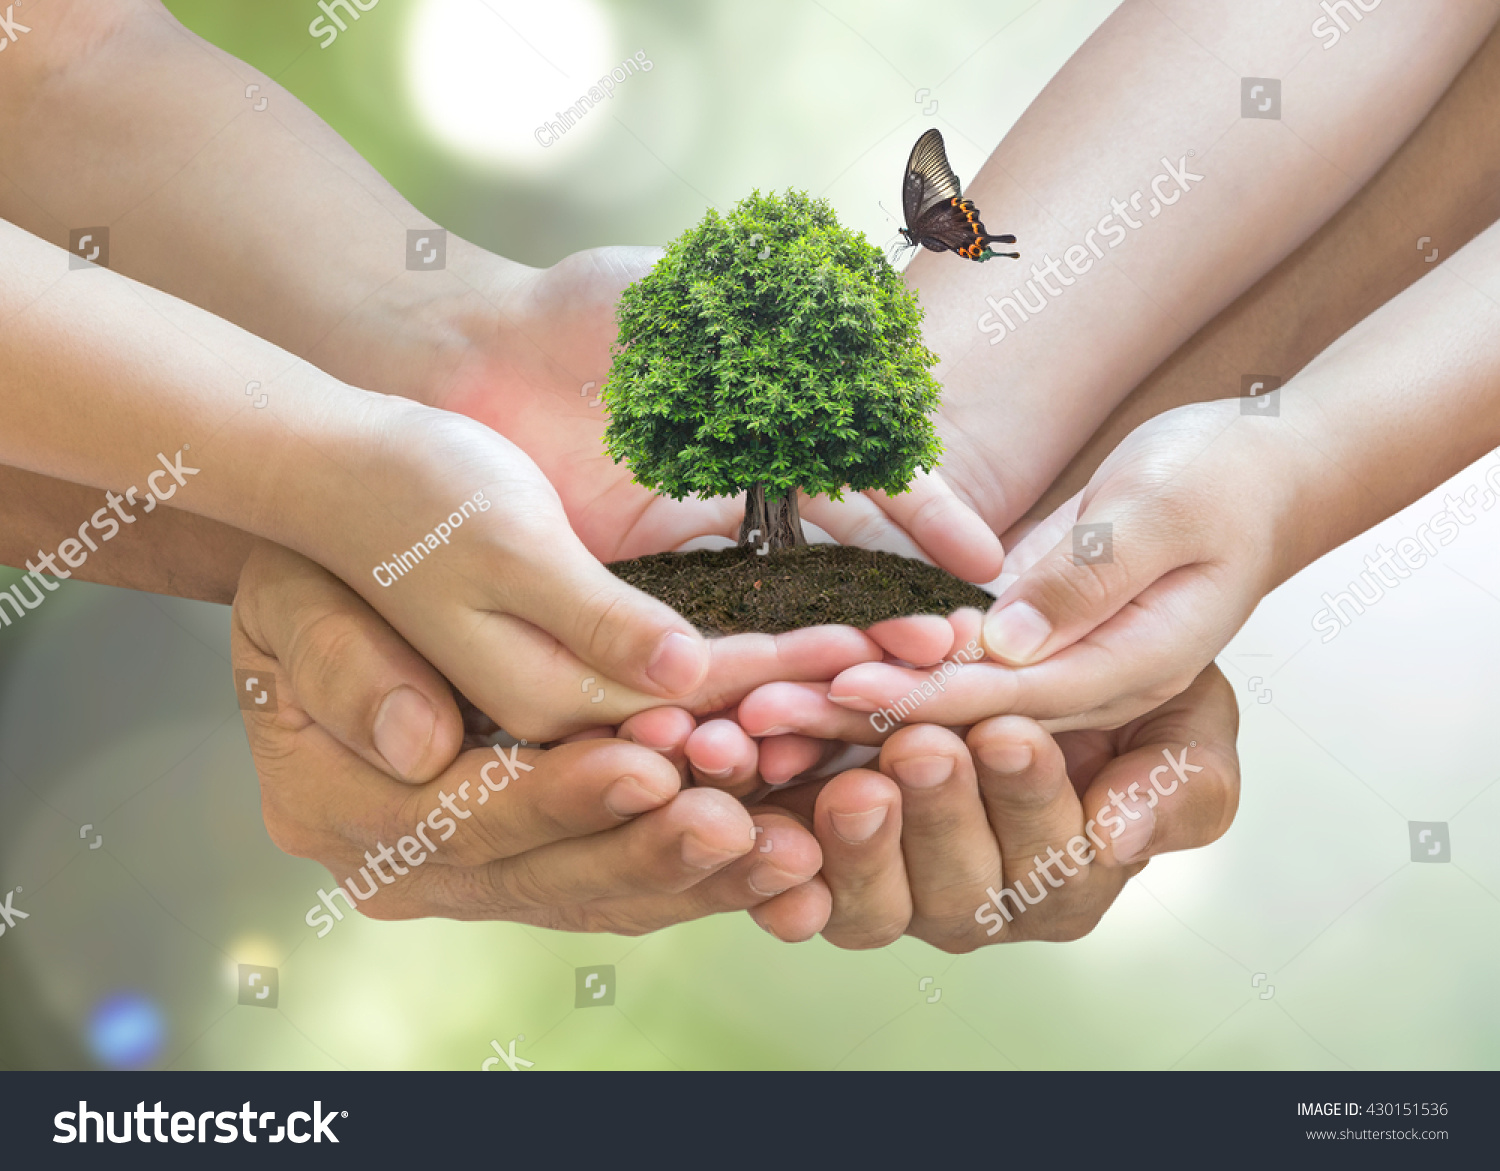 Parent and children planting together big tree care on family hands with butterfly on nature greenery background for World environment day, reforestation, sustainable environmental ecosystems concept